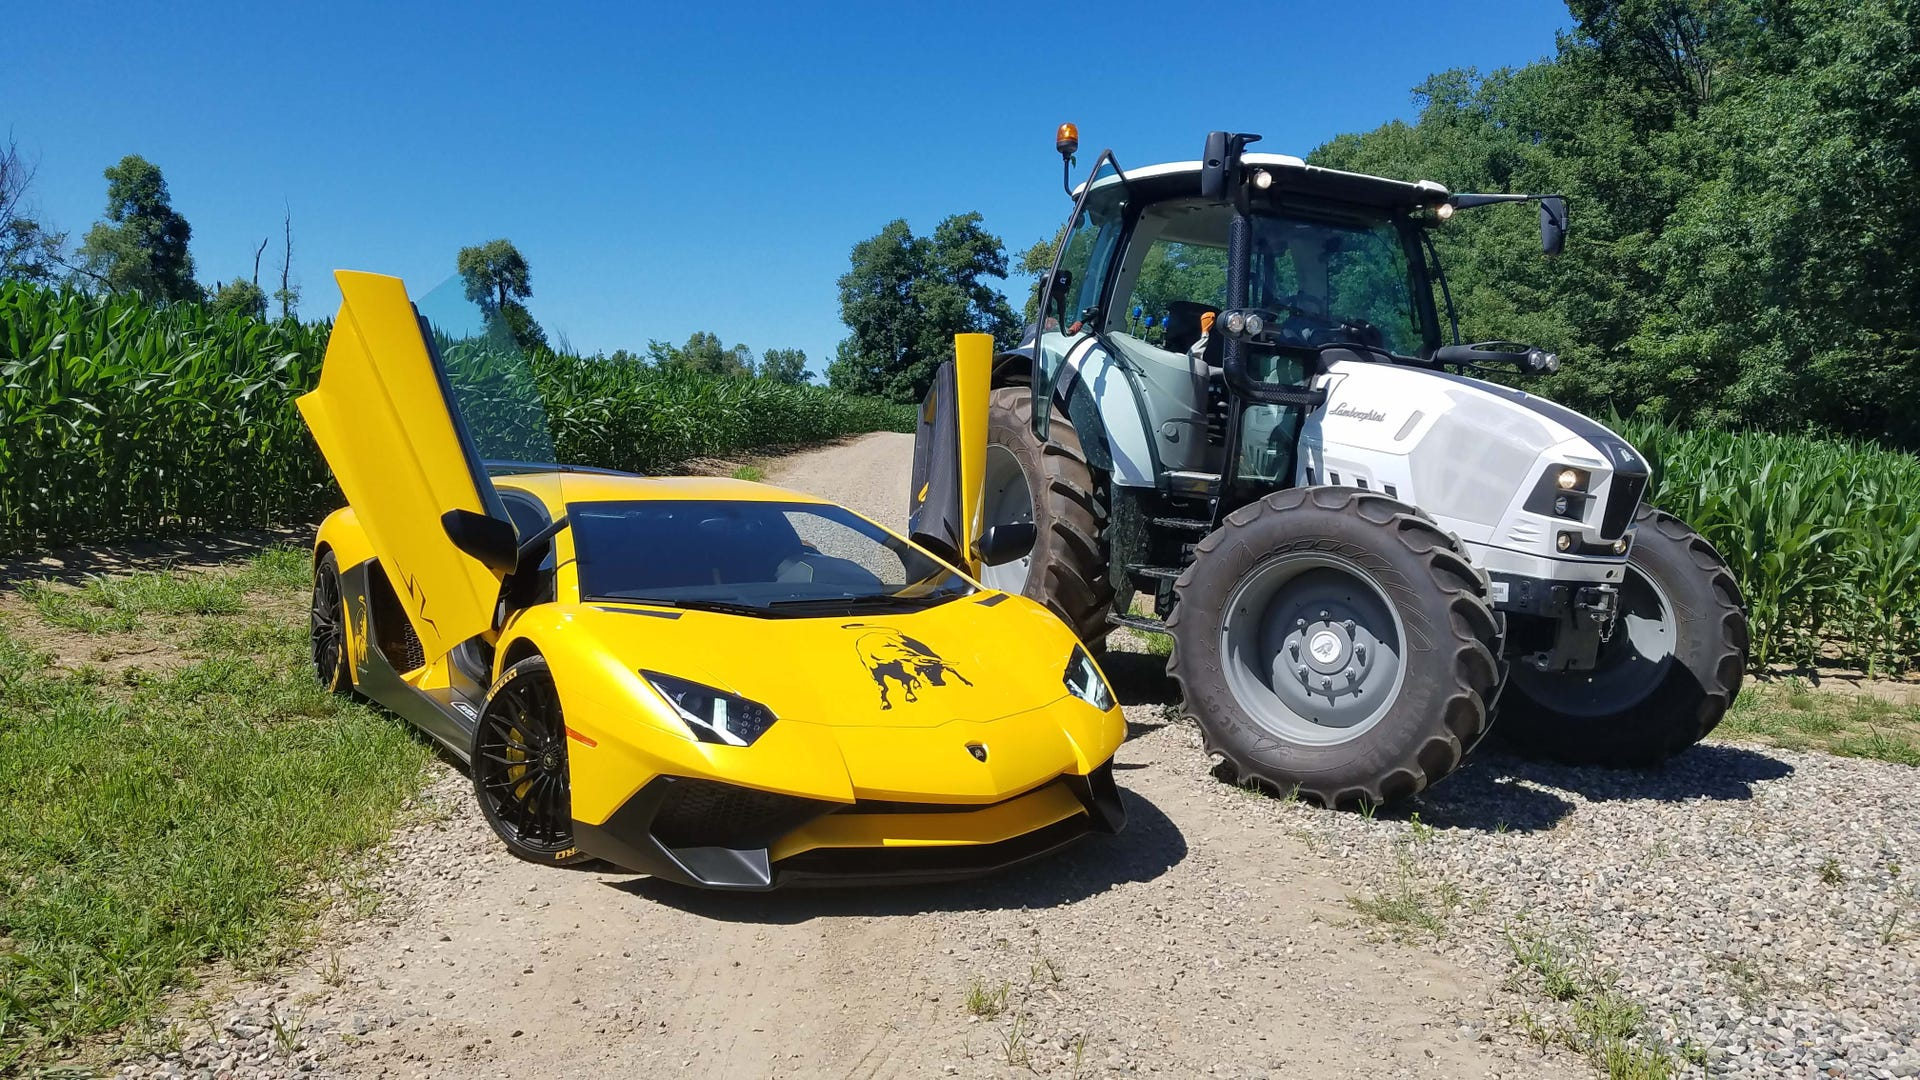 Lamborghini Sports Car And Tractor